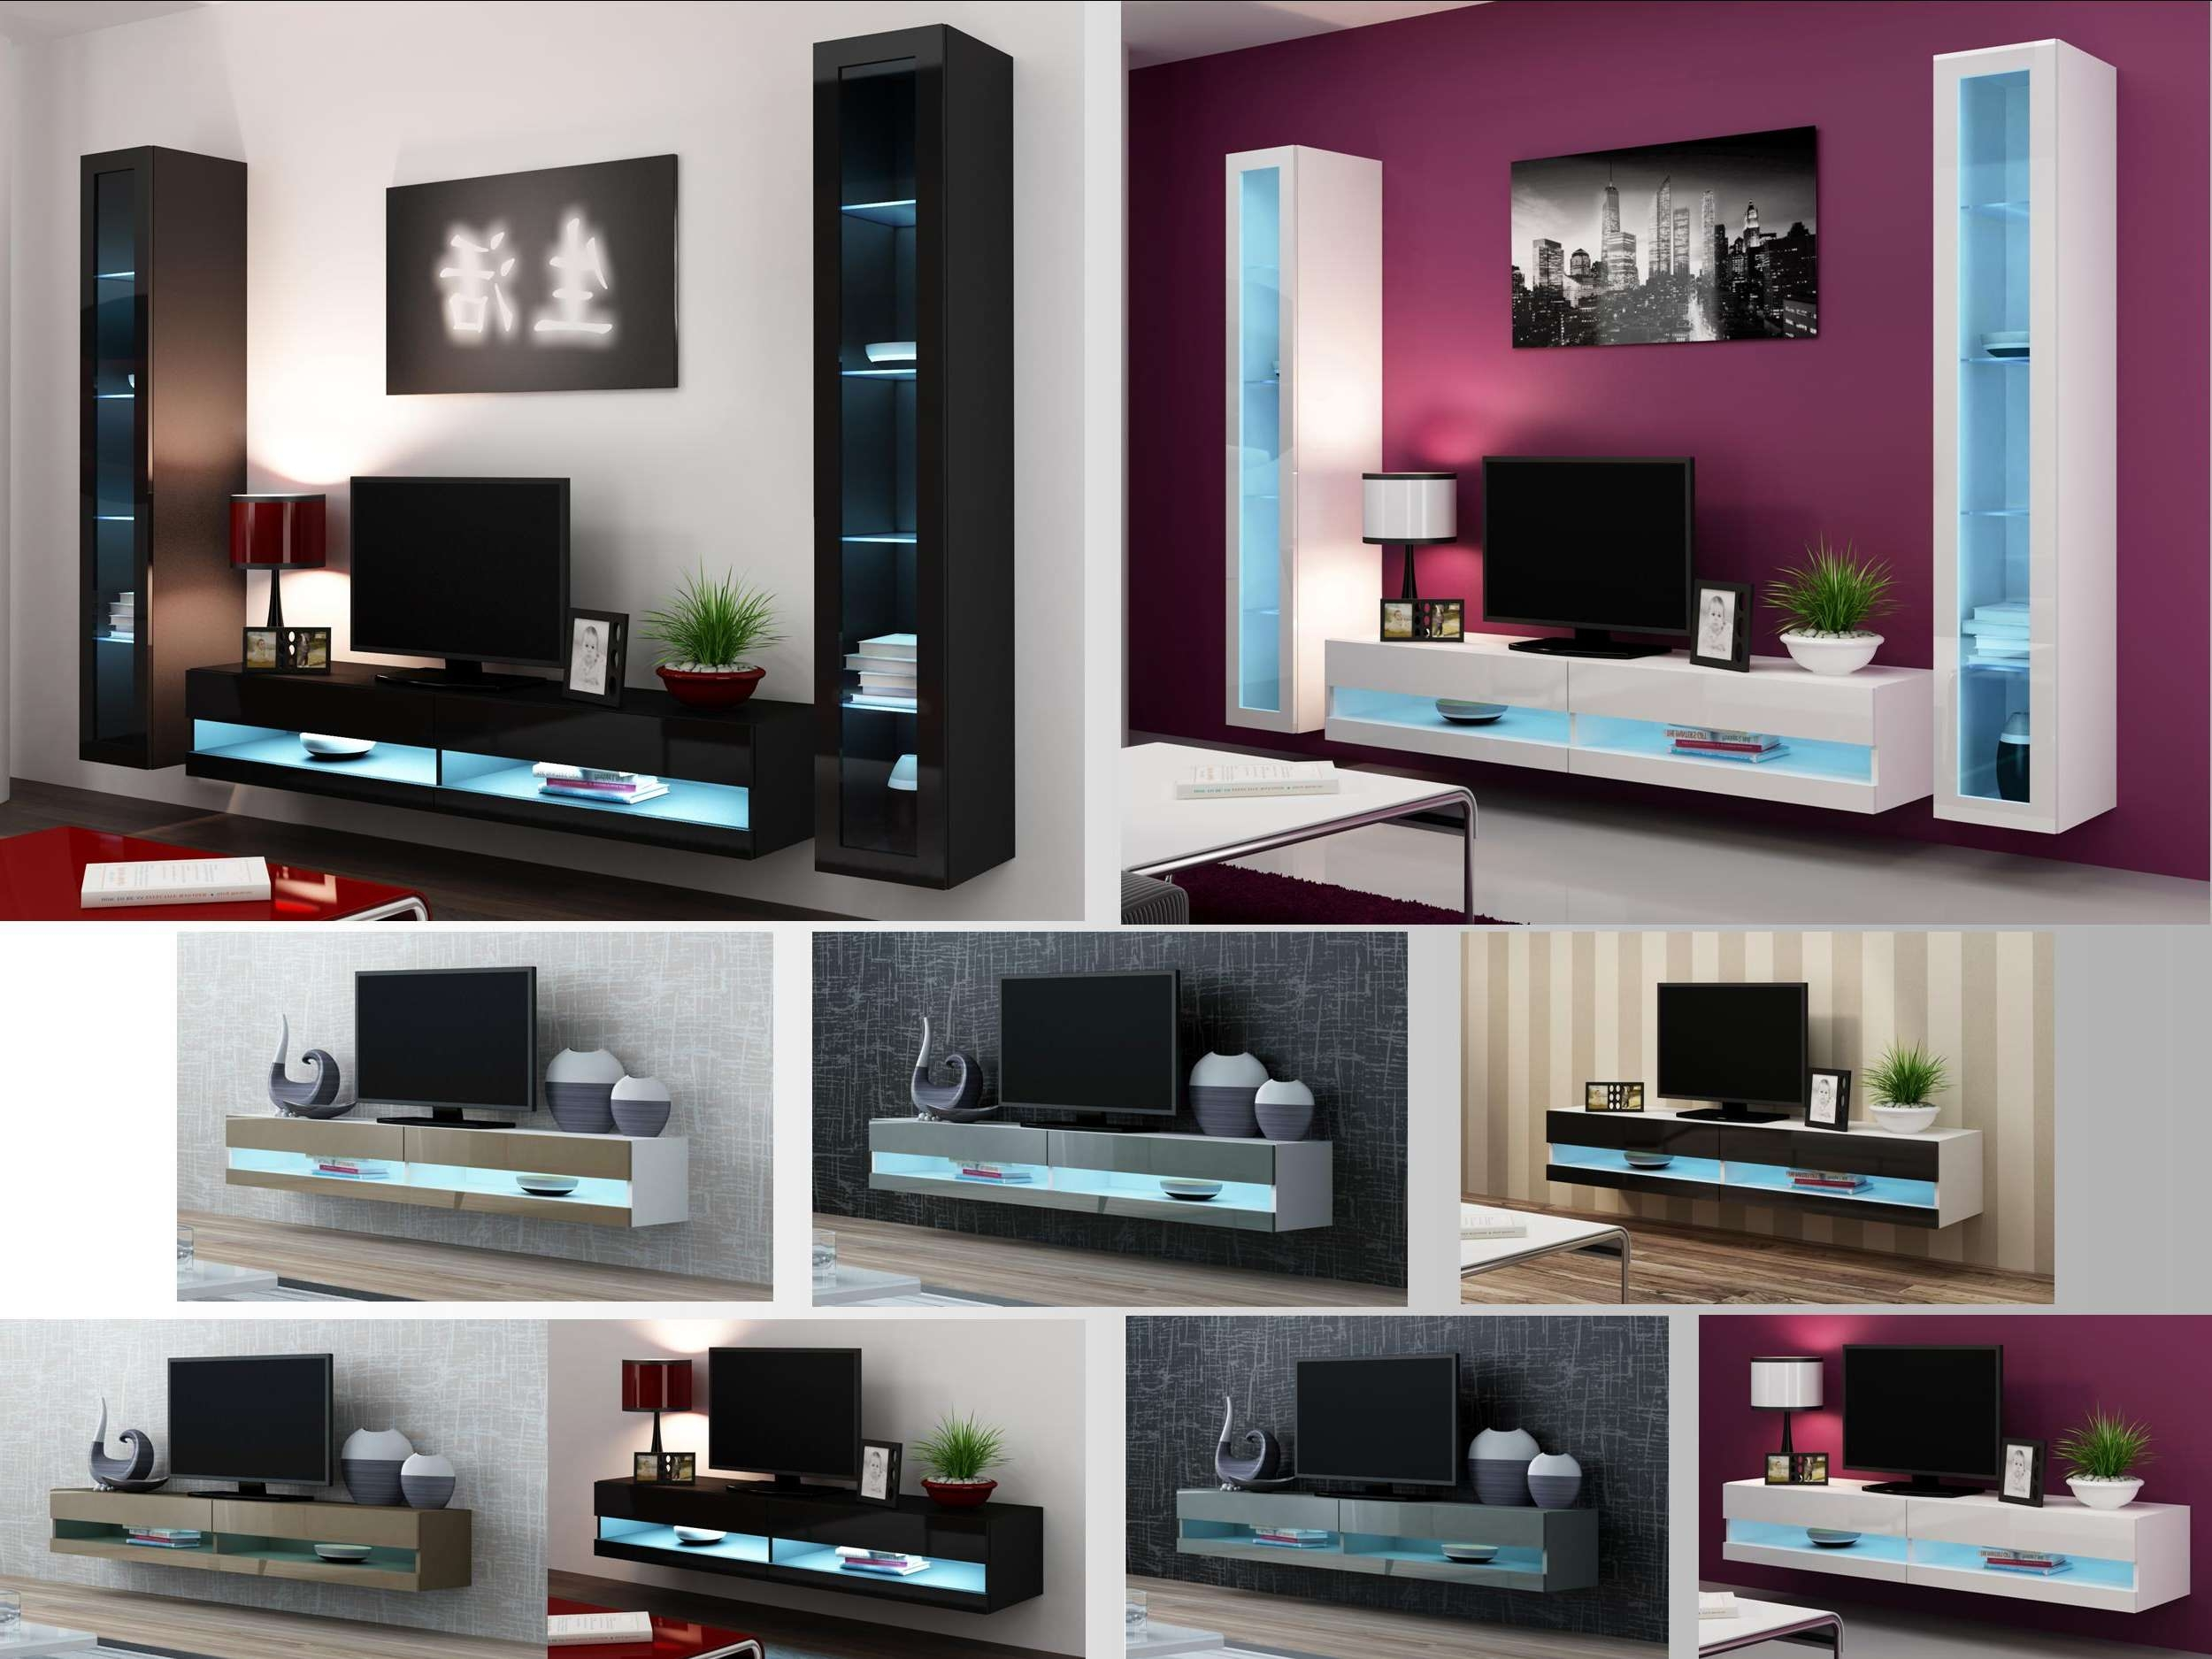 High Gloss Living Room Furniture – Tv Stand, Wall Mounted Cabinet Within Tv Stands Wall Units (View 15 of 15)